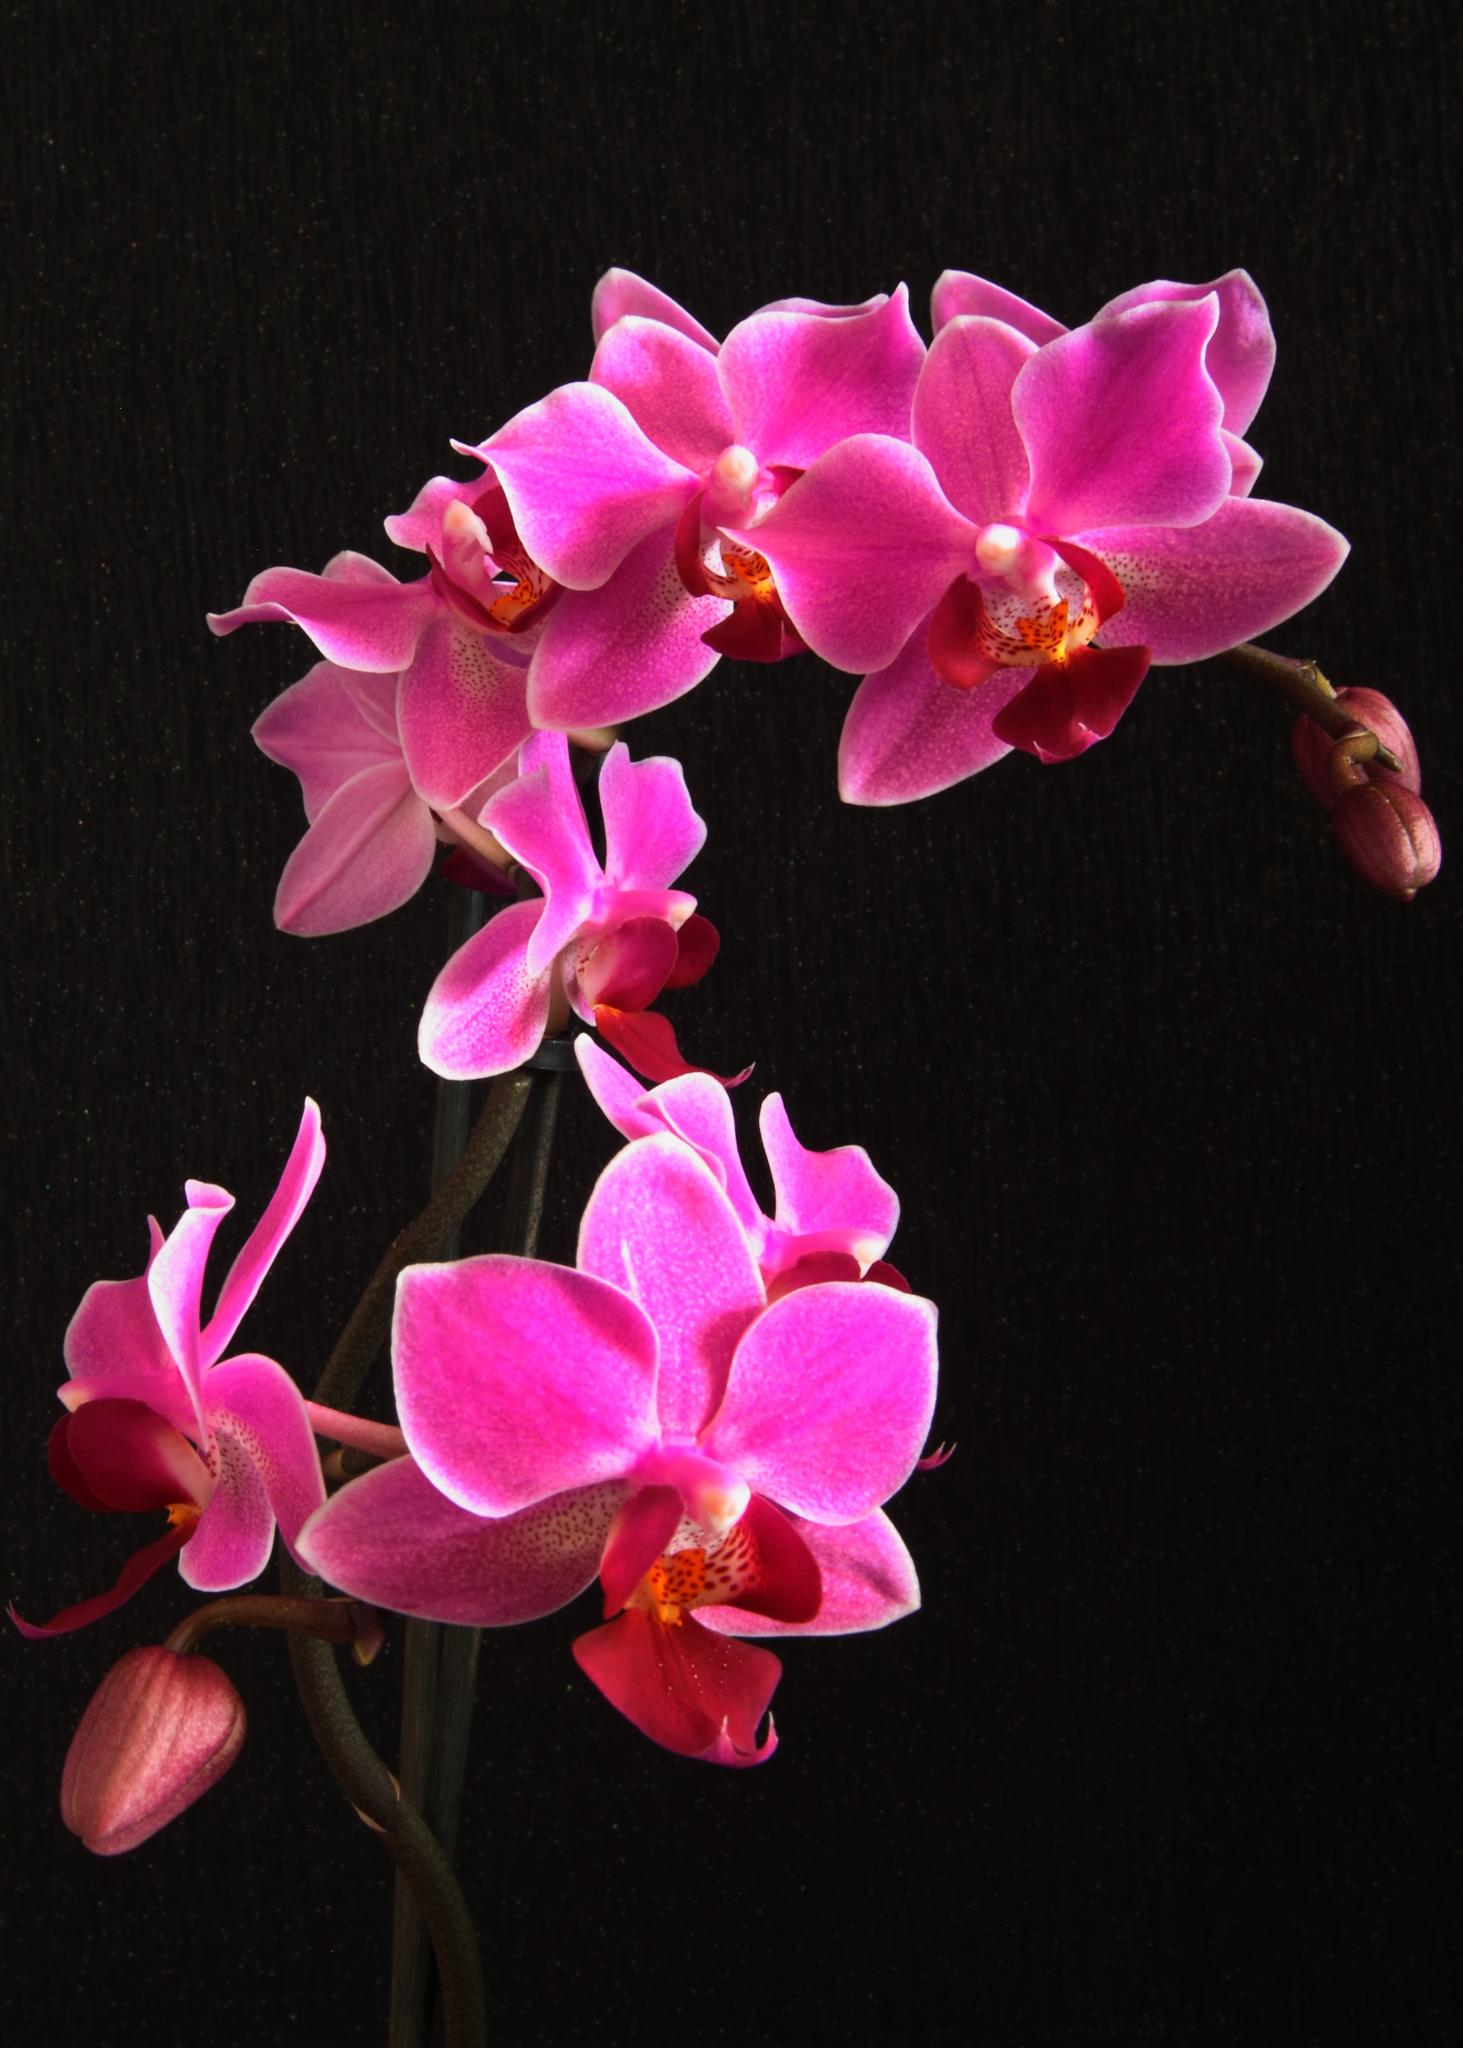 Orchid 3 by chris.stubbings.52